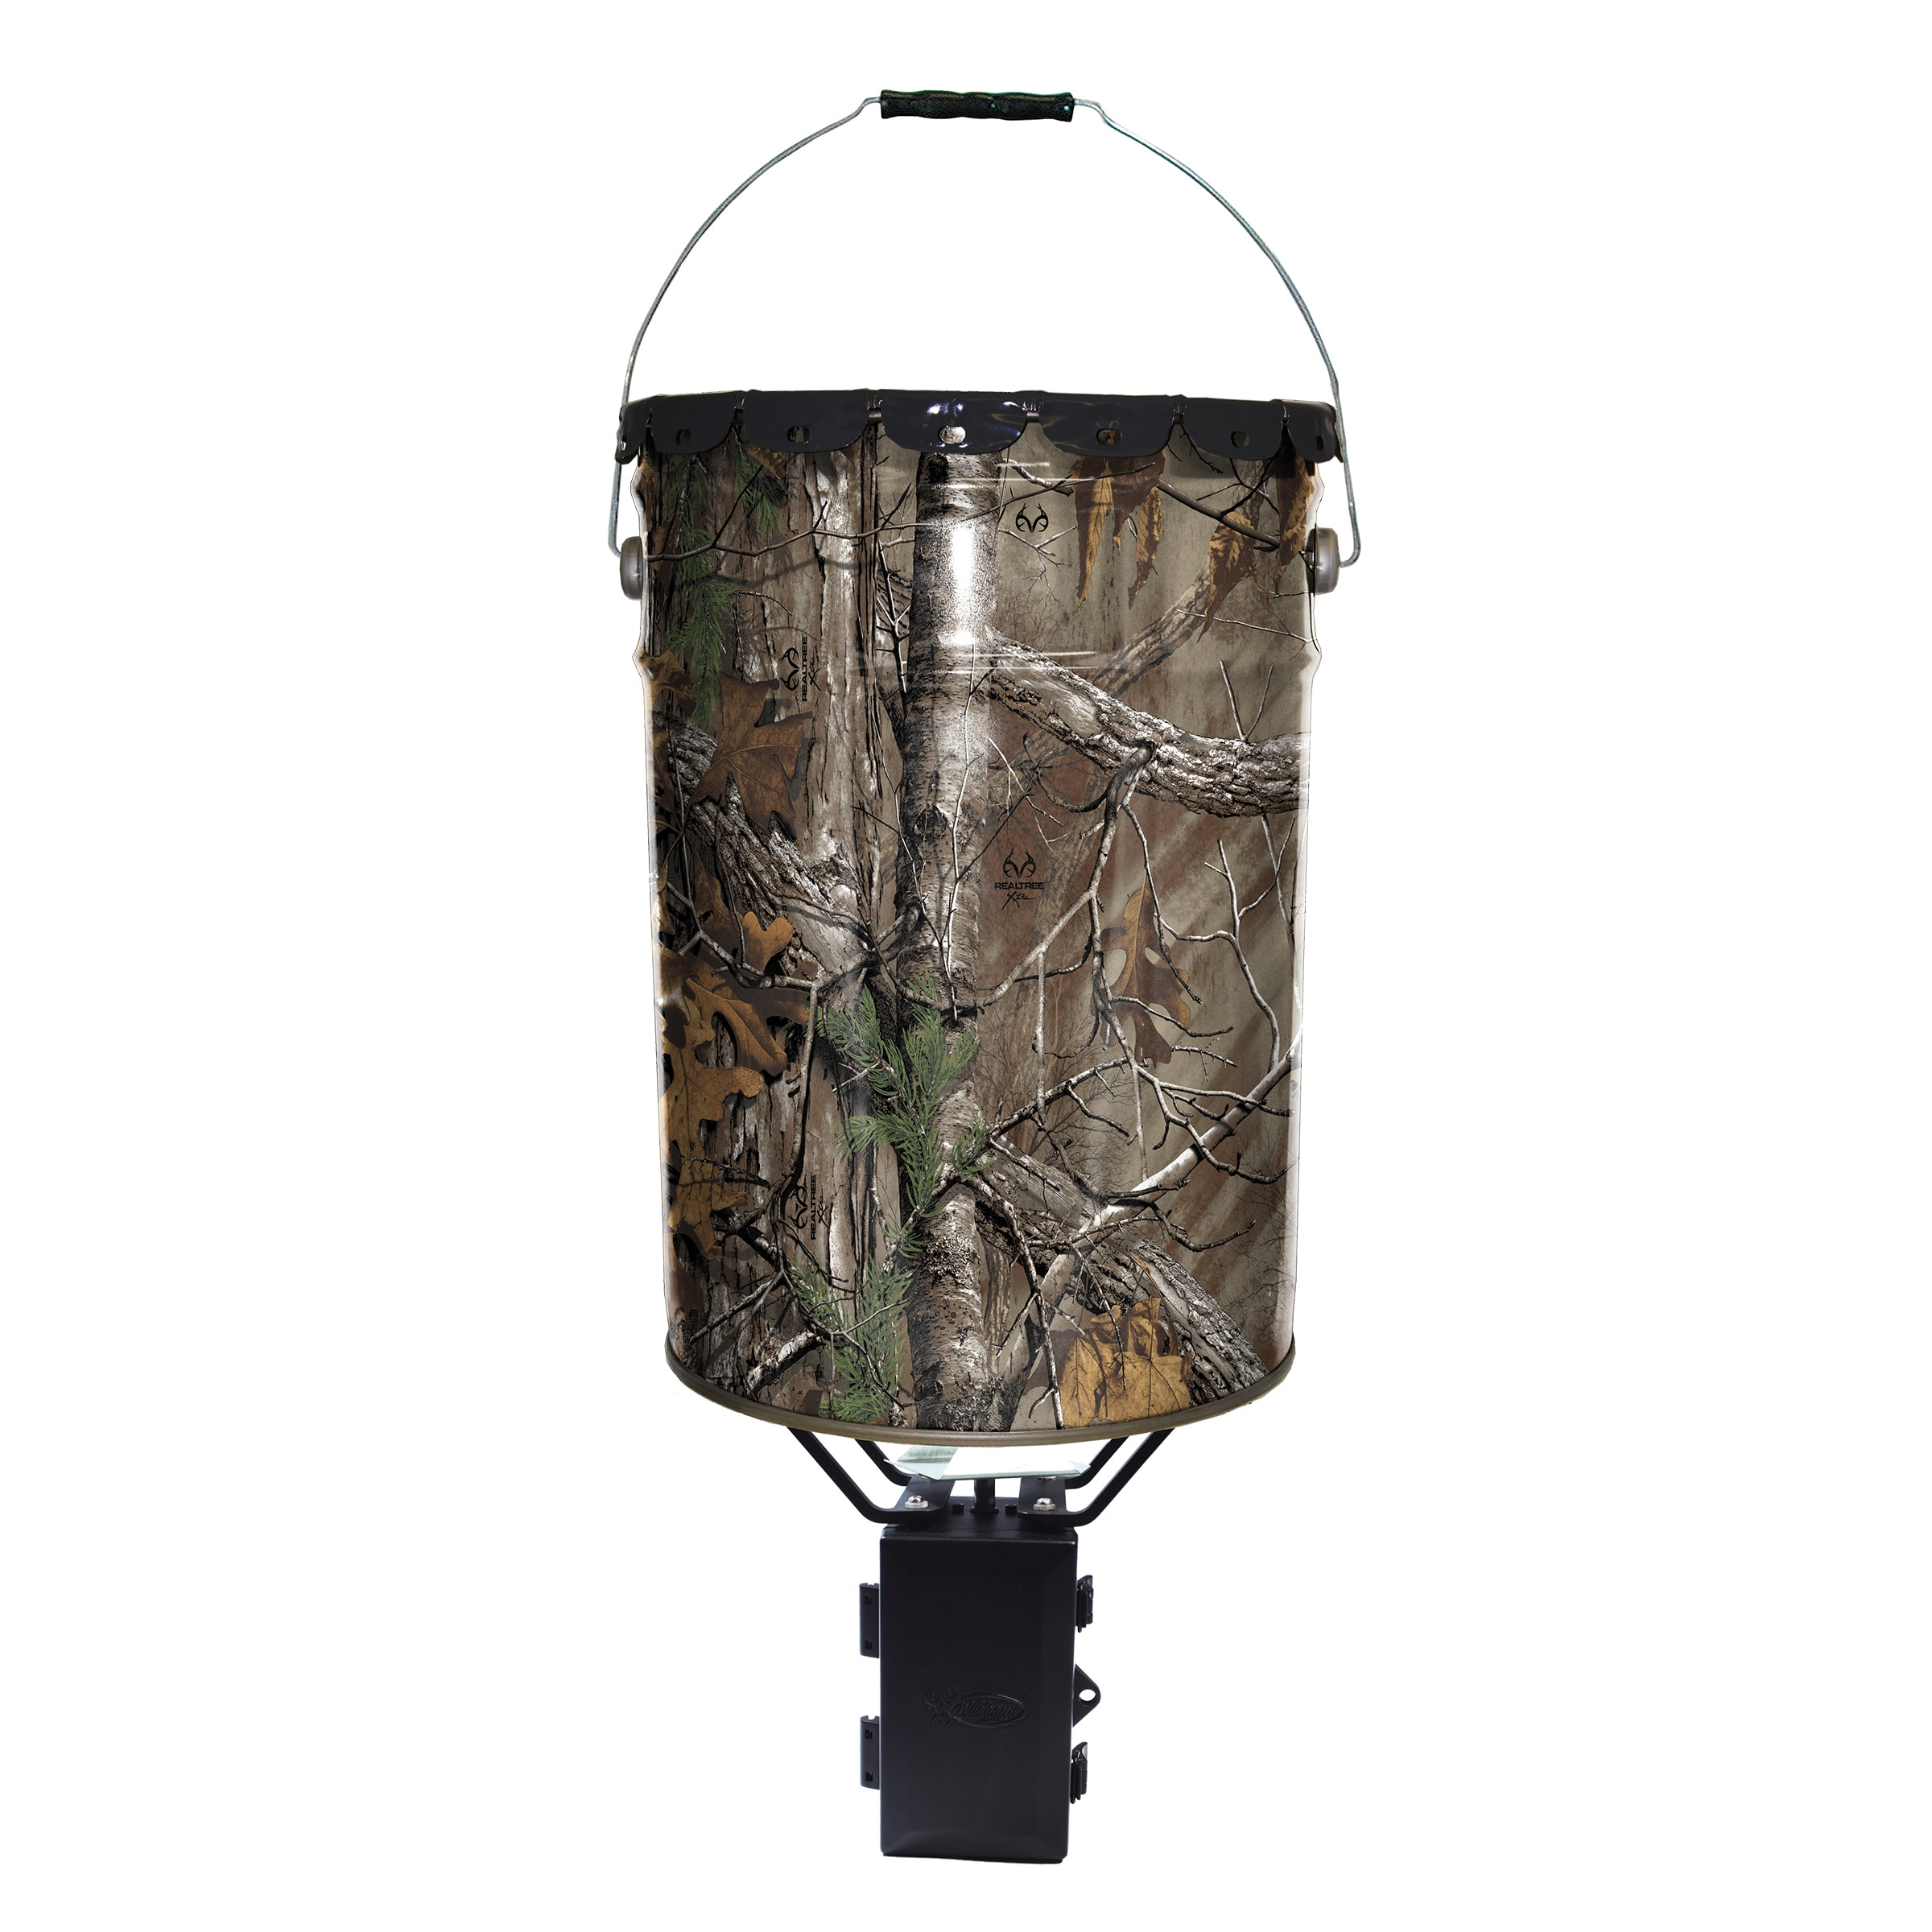 moultrie gal c mfg feeder reg pro deer feeders product american wildlife h b hanging hunter